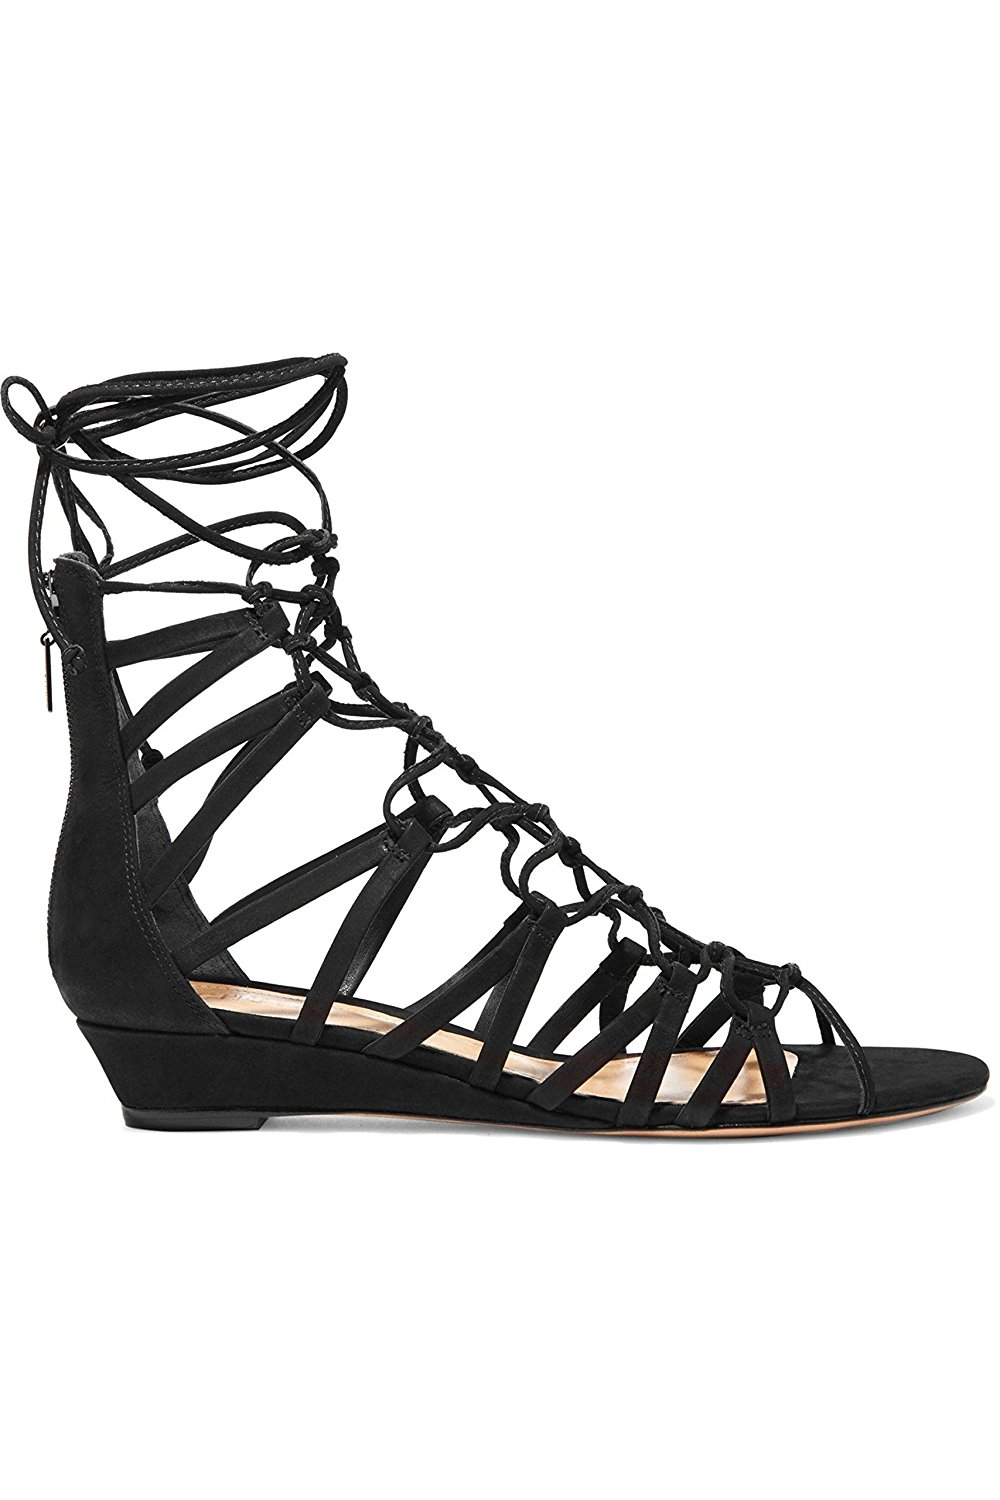 fd7f02be4c87 Get Quotations · SCHUTZ Nitty Black Suede Lace-up Strappy Low Wedge Open Toe  Nubuck Sandals